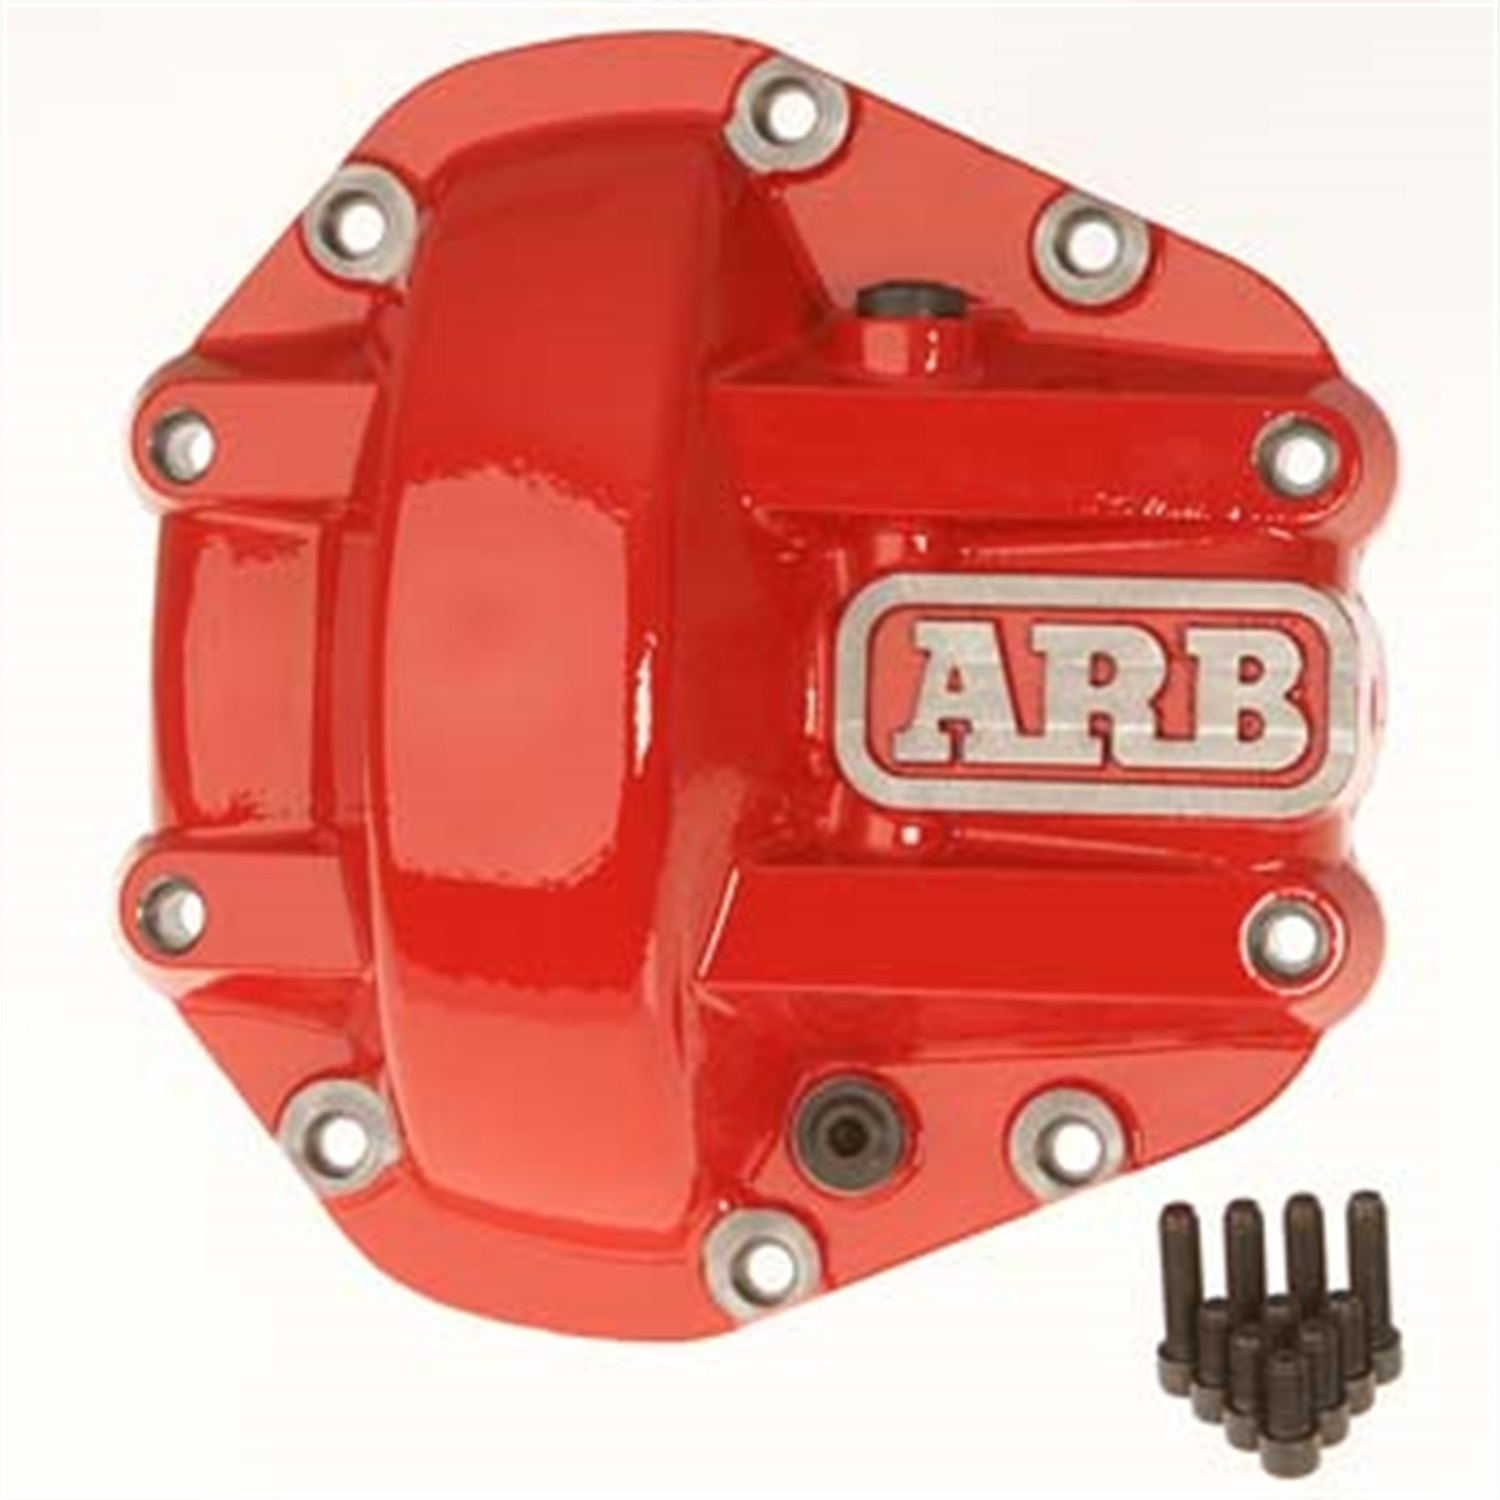 ARB 4x4 Accessories 0750004 Differential Cover Fits 87-07 Liberty TJ Wrangler